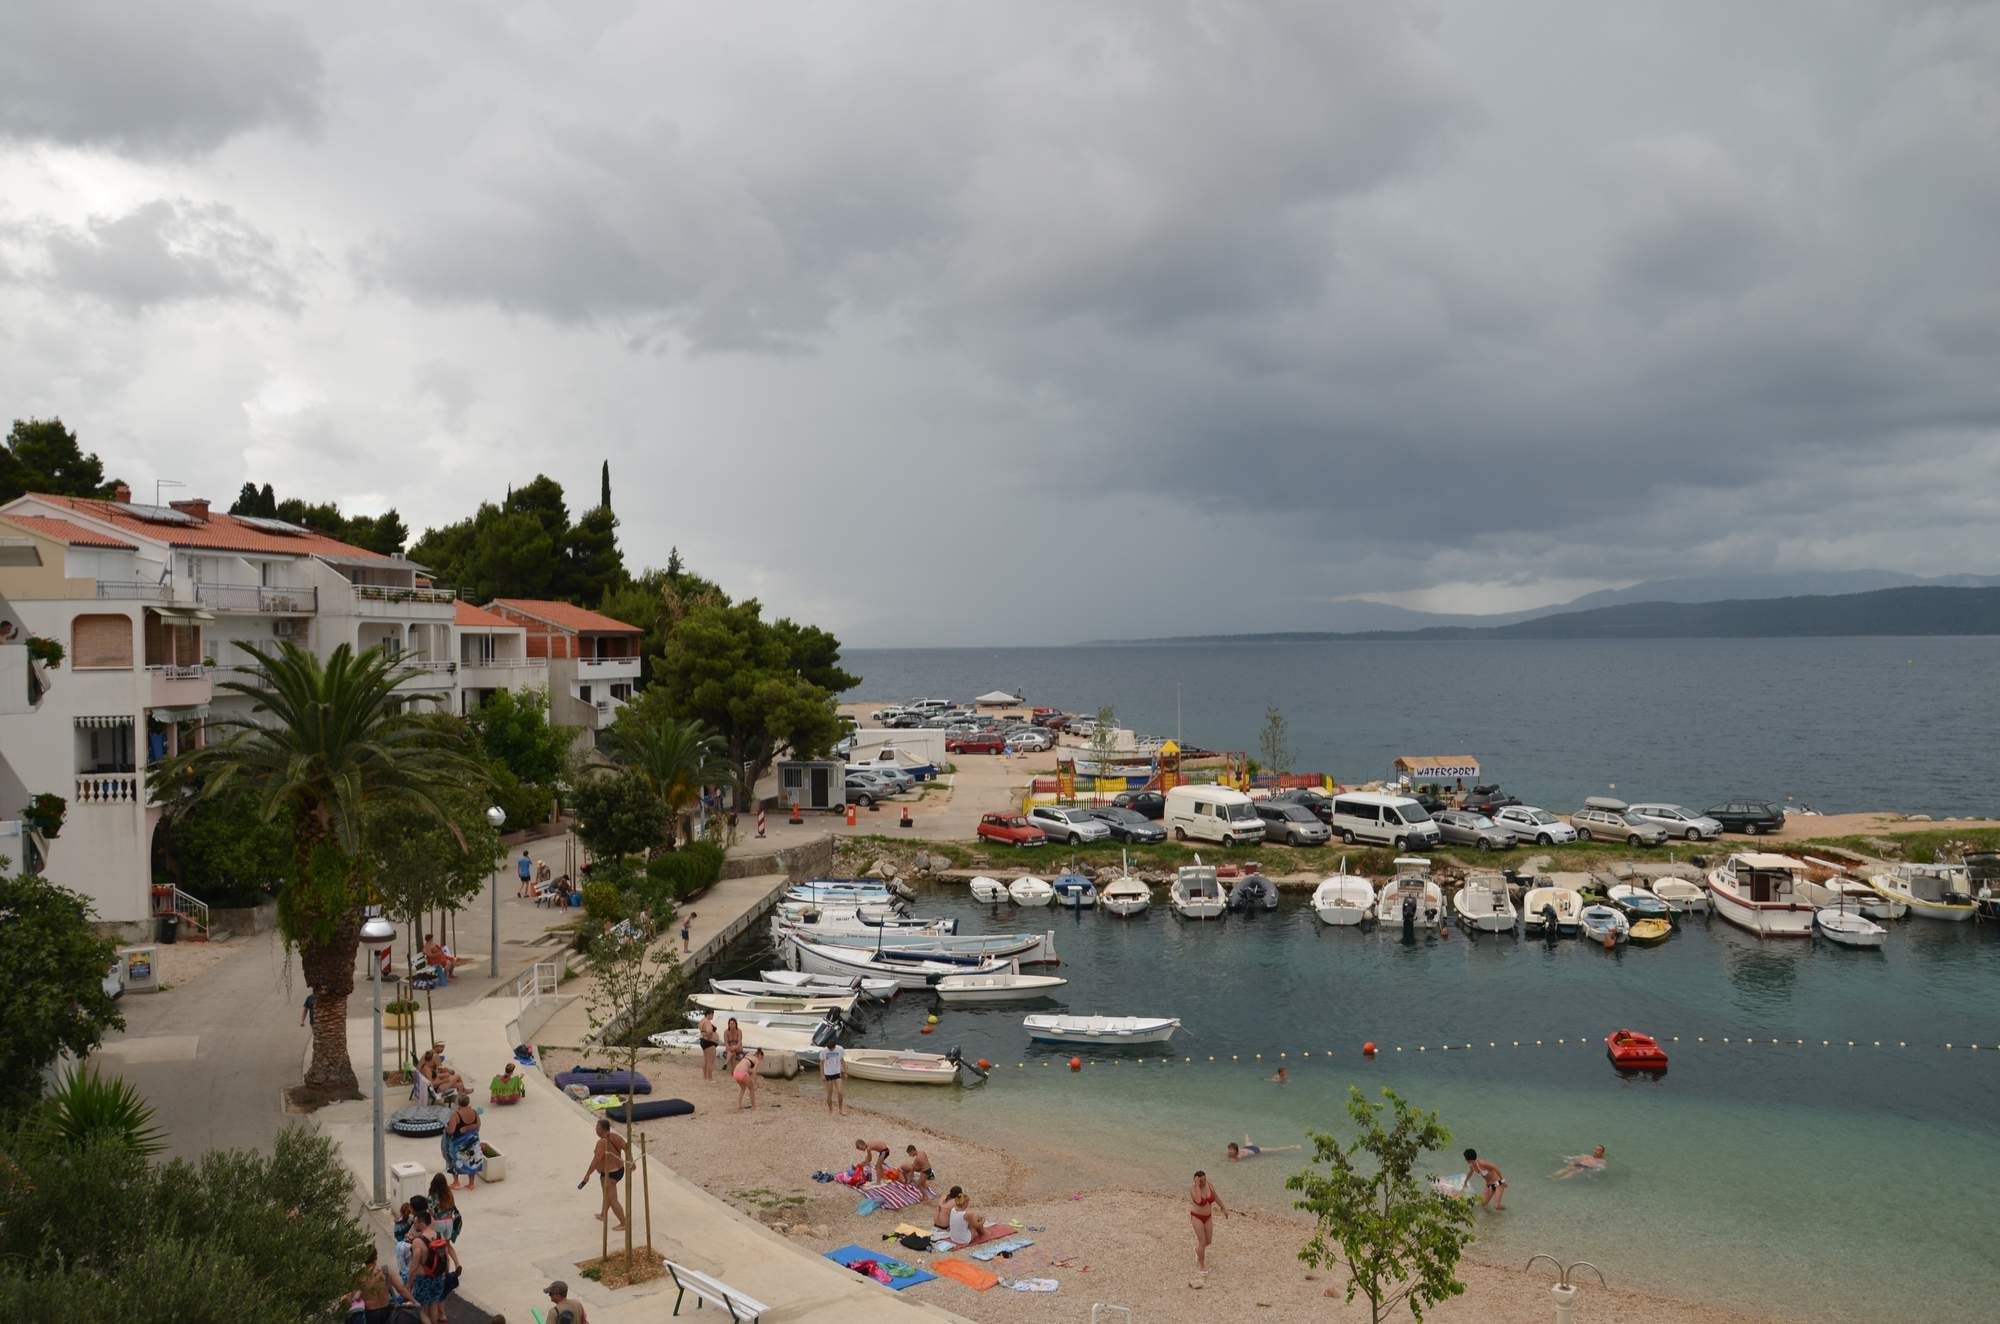 The weather can be changeable in Croatia as shown in this photo of the resort of Igrane. The storm clouds rolling in set against the harbour and beach make an interesting photo composition.